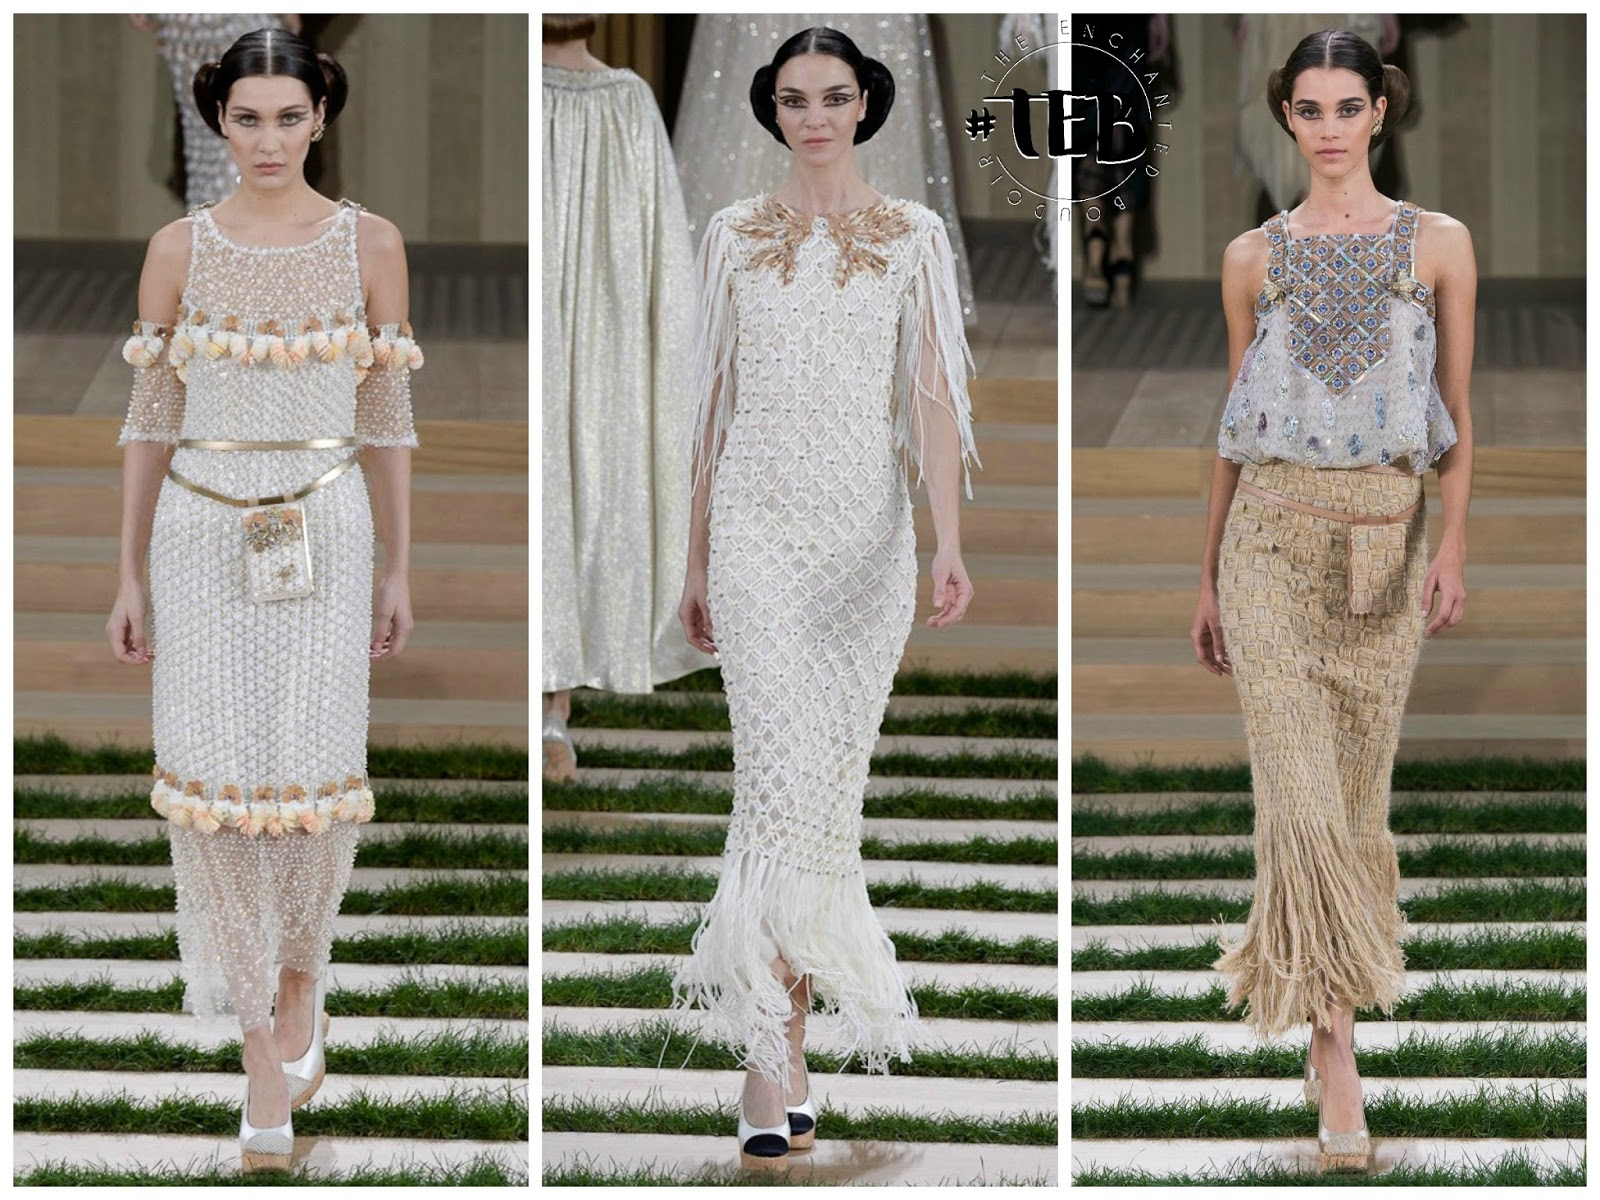 chanel-couture-spring-2016-fashion-show-collection